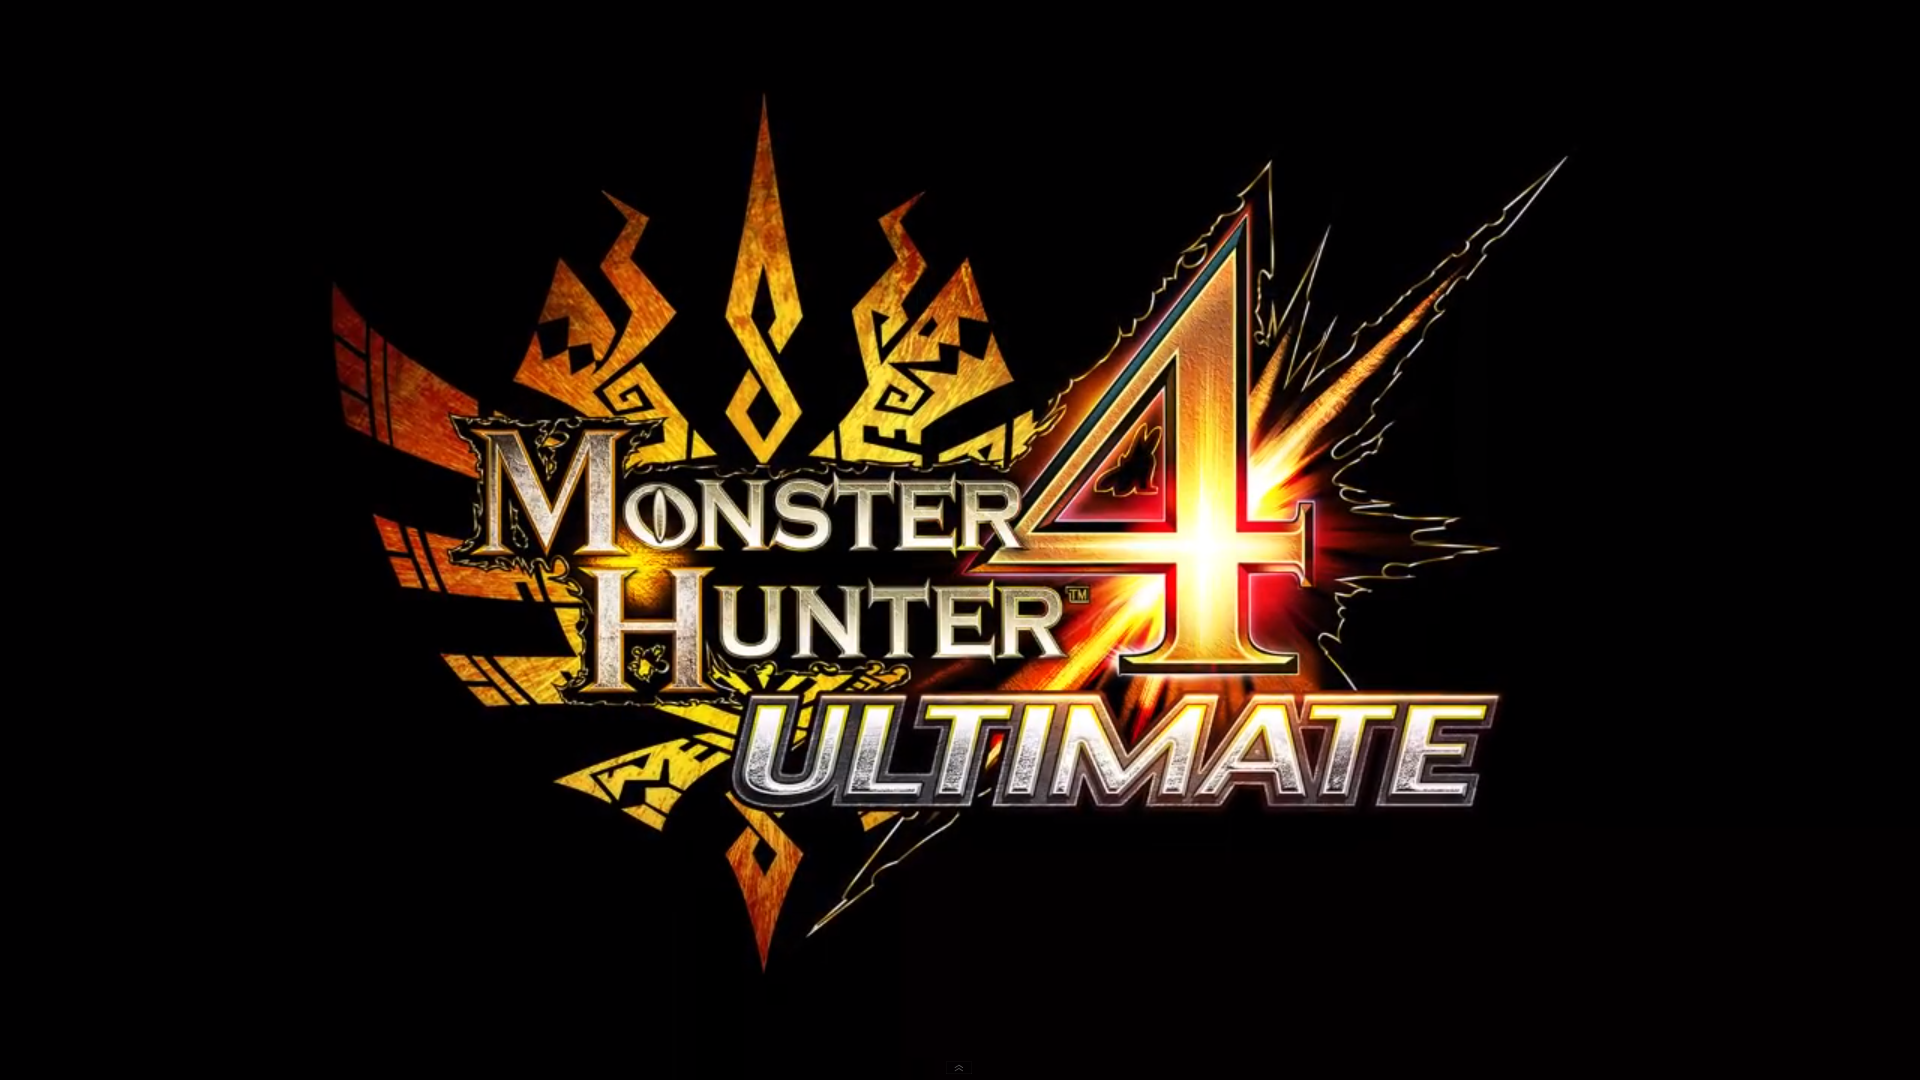 Capcom announces Monster Hunter 4 Ultimate DLC release schedule and pricing